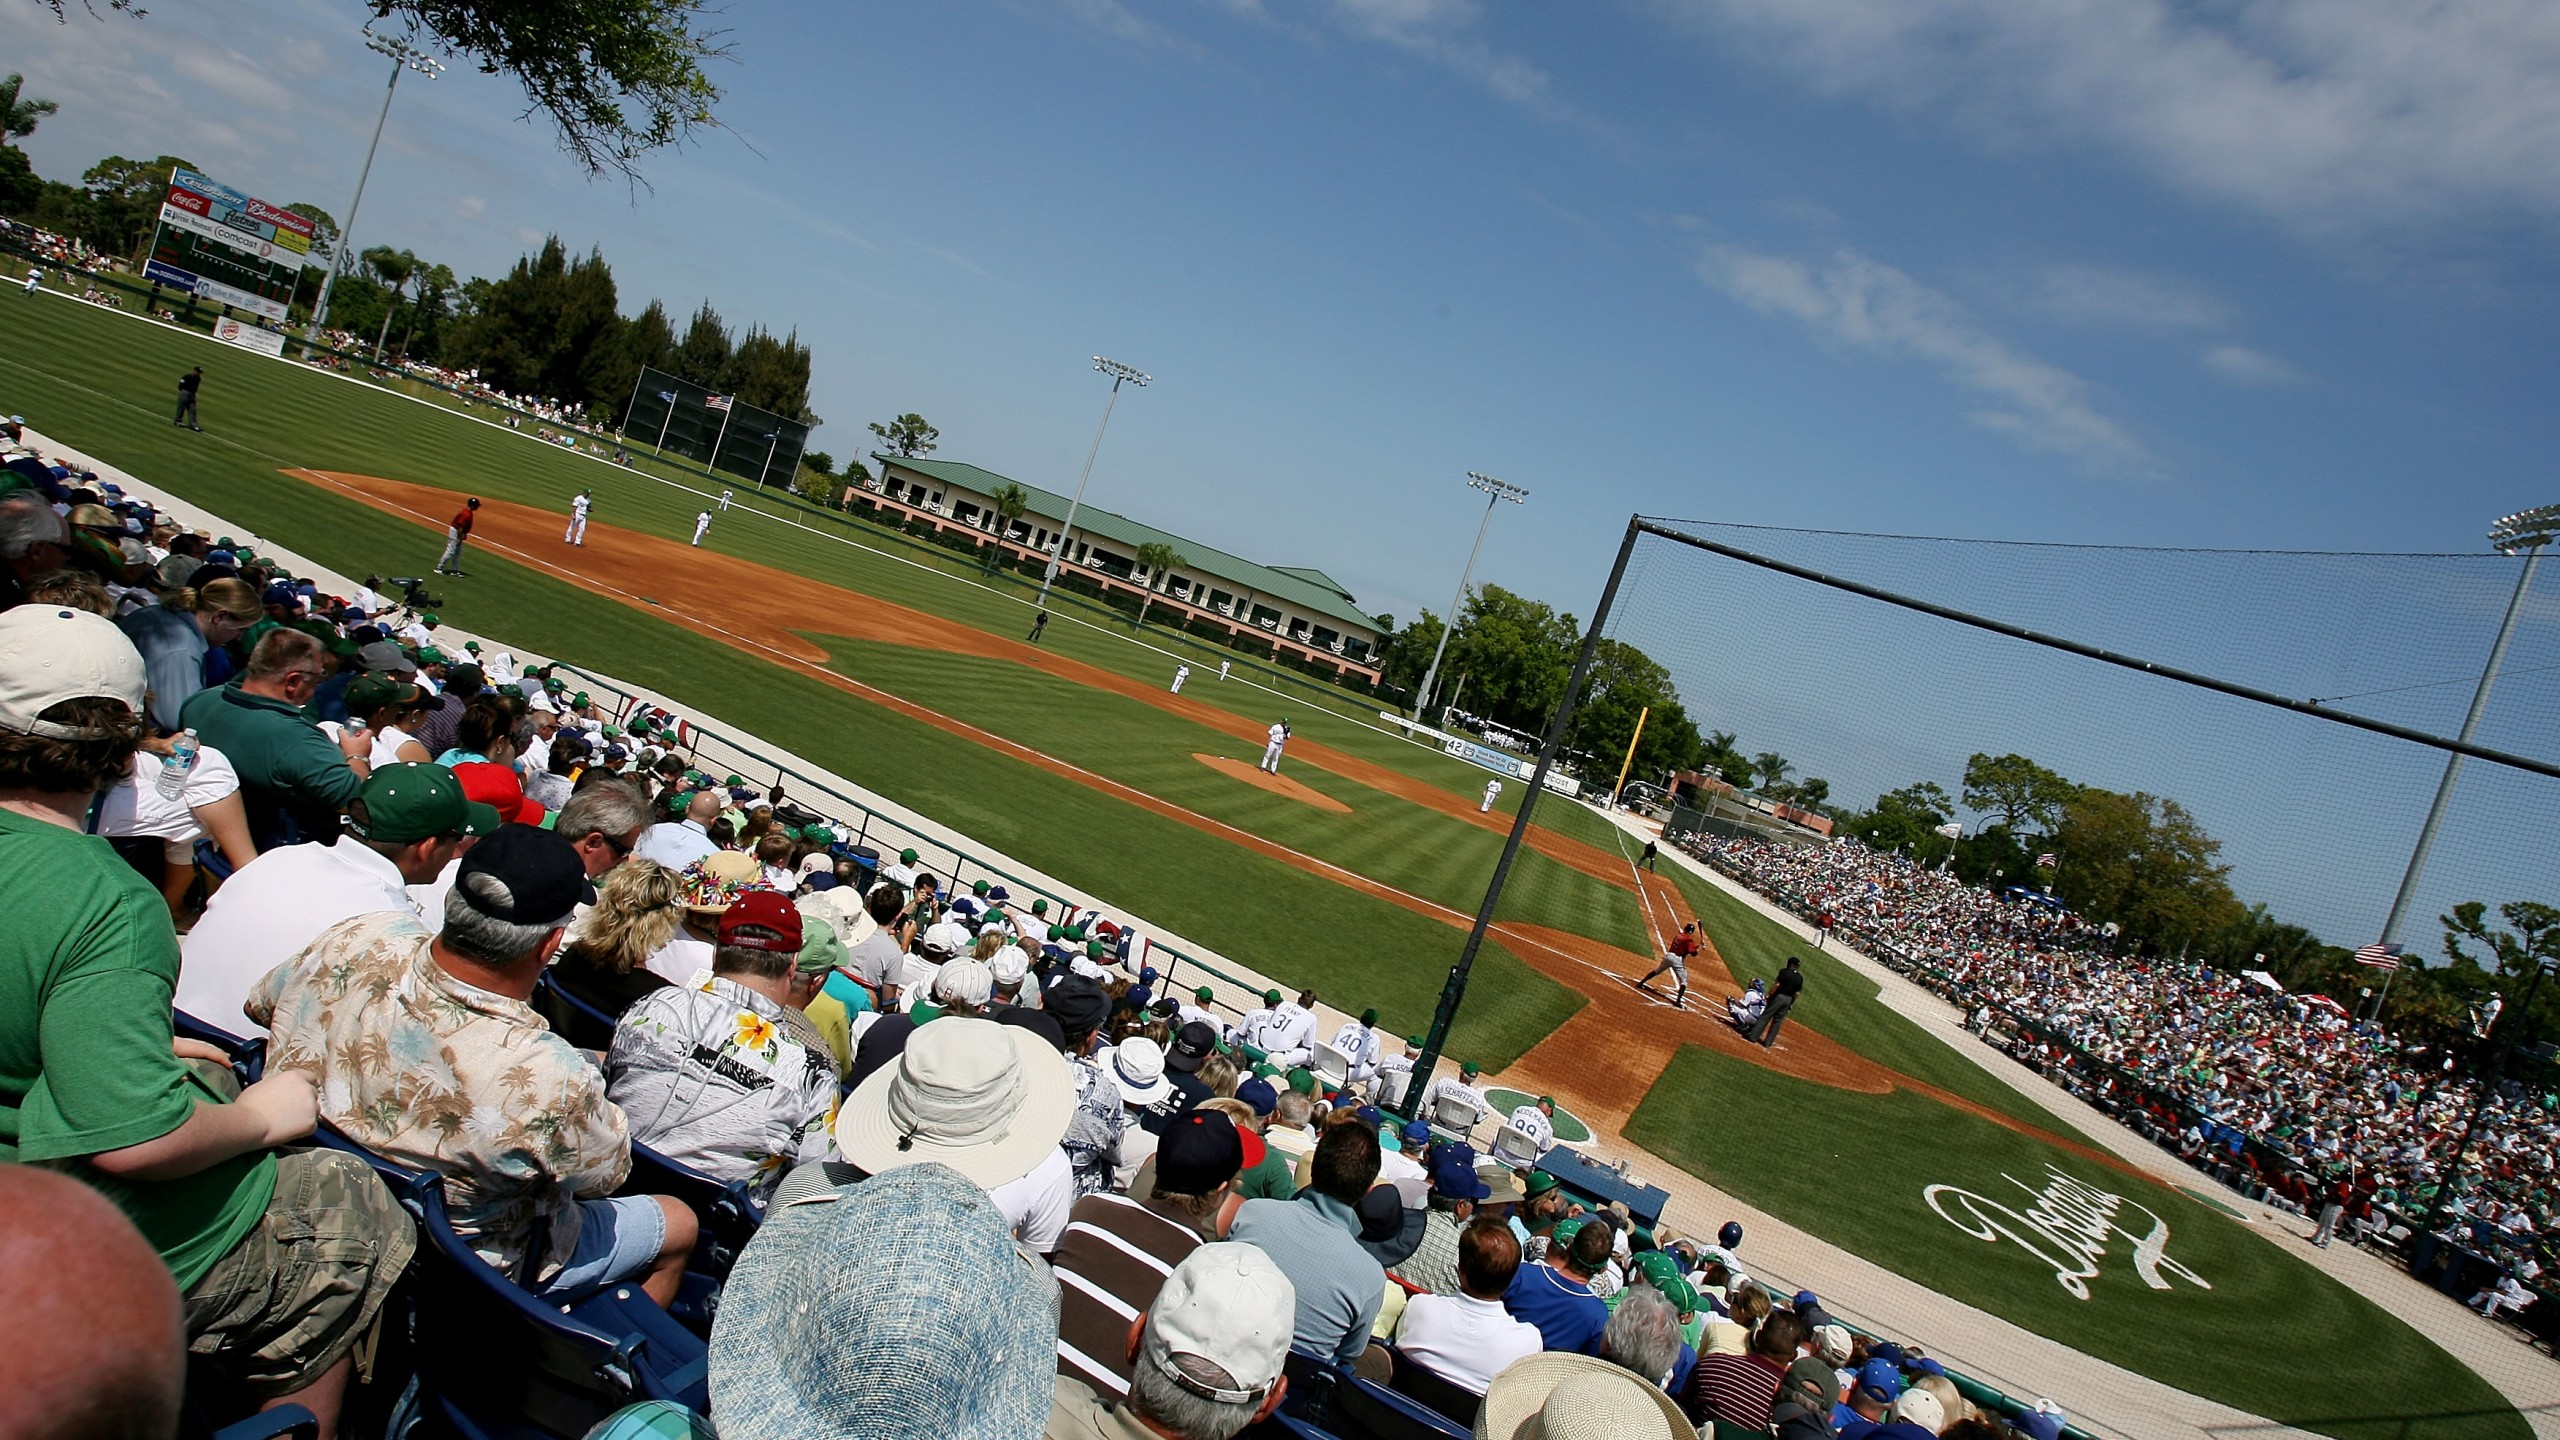 A veiw from up high as the Houston Astros take on the Los Angeles Dodgers during spring training in the last game played by the Dodgers in Dodgertown before moving to Arizona, March 17, 2008 in Vero Beach, Florida. (Credit: Doug Benc / Getty Images)